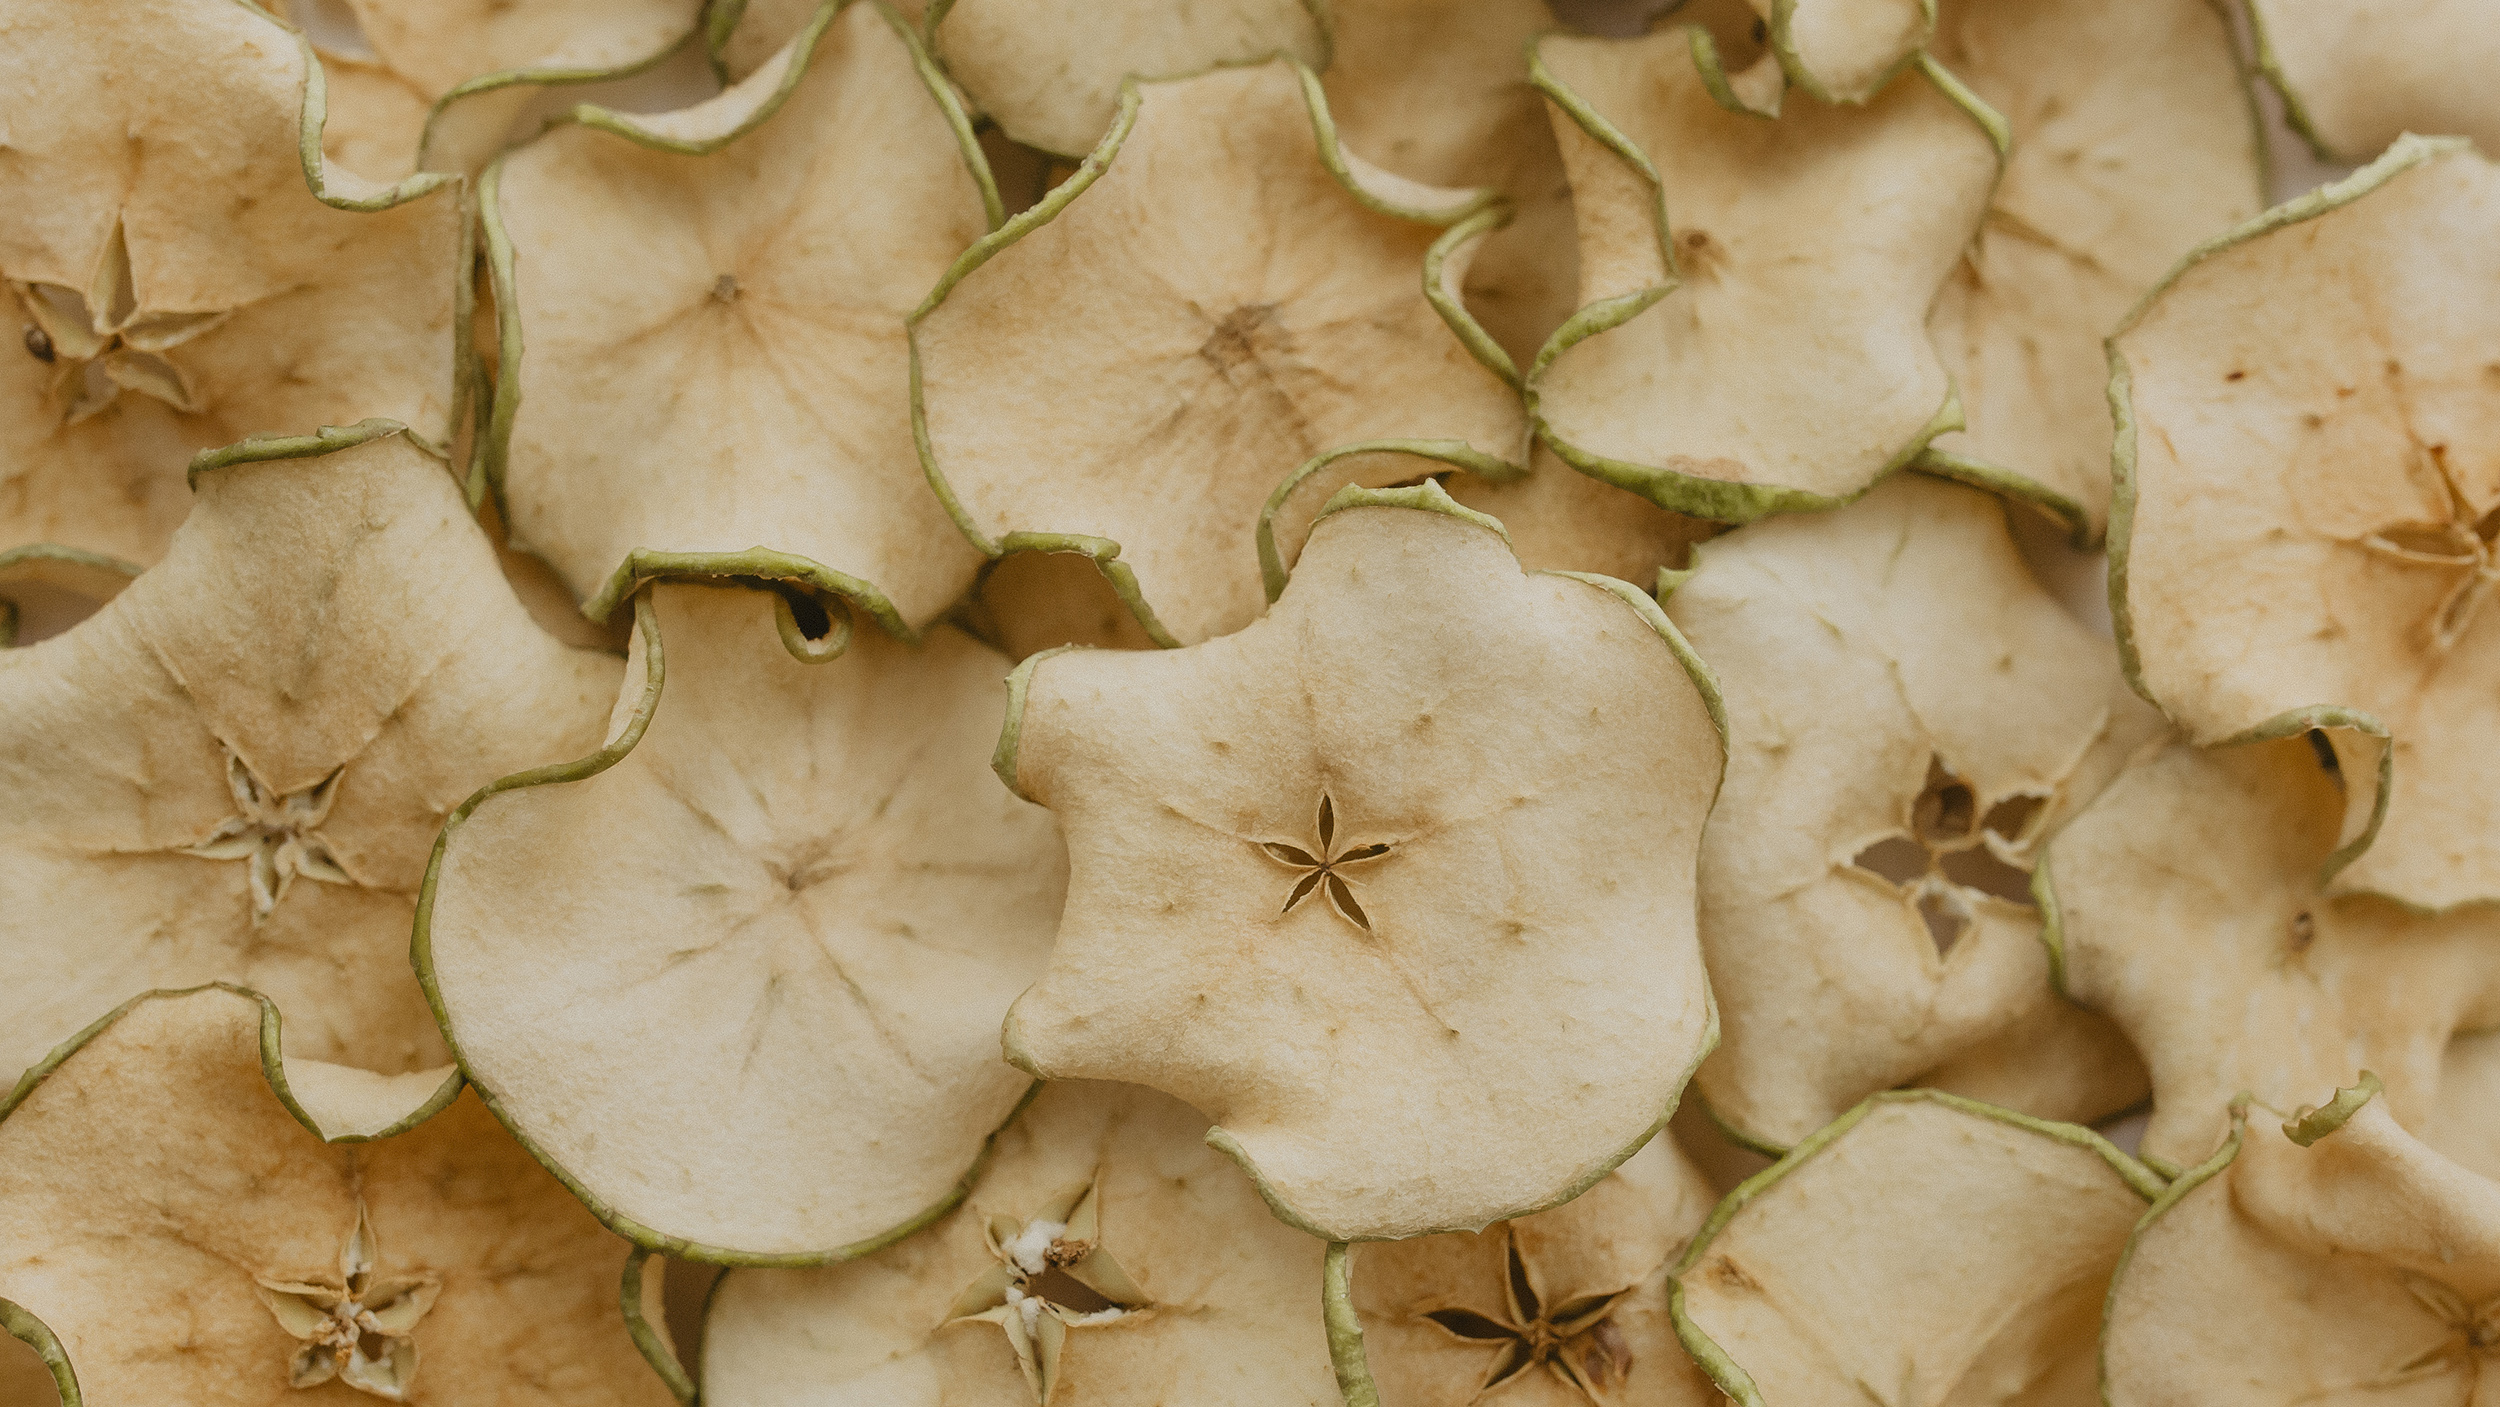 Dehydrated apple